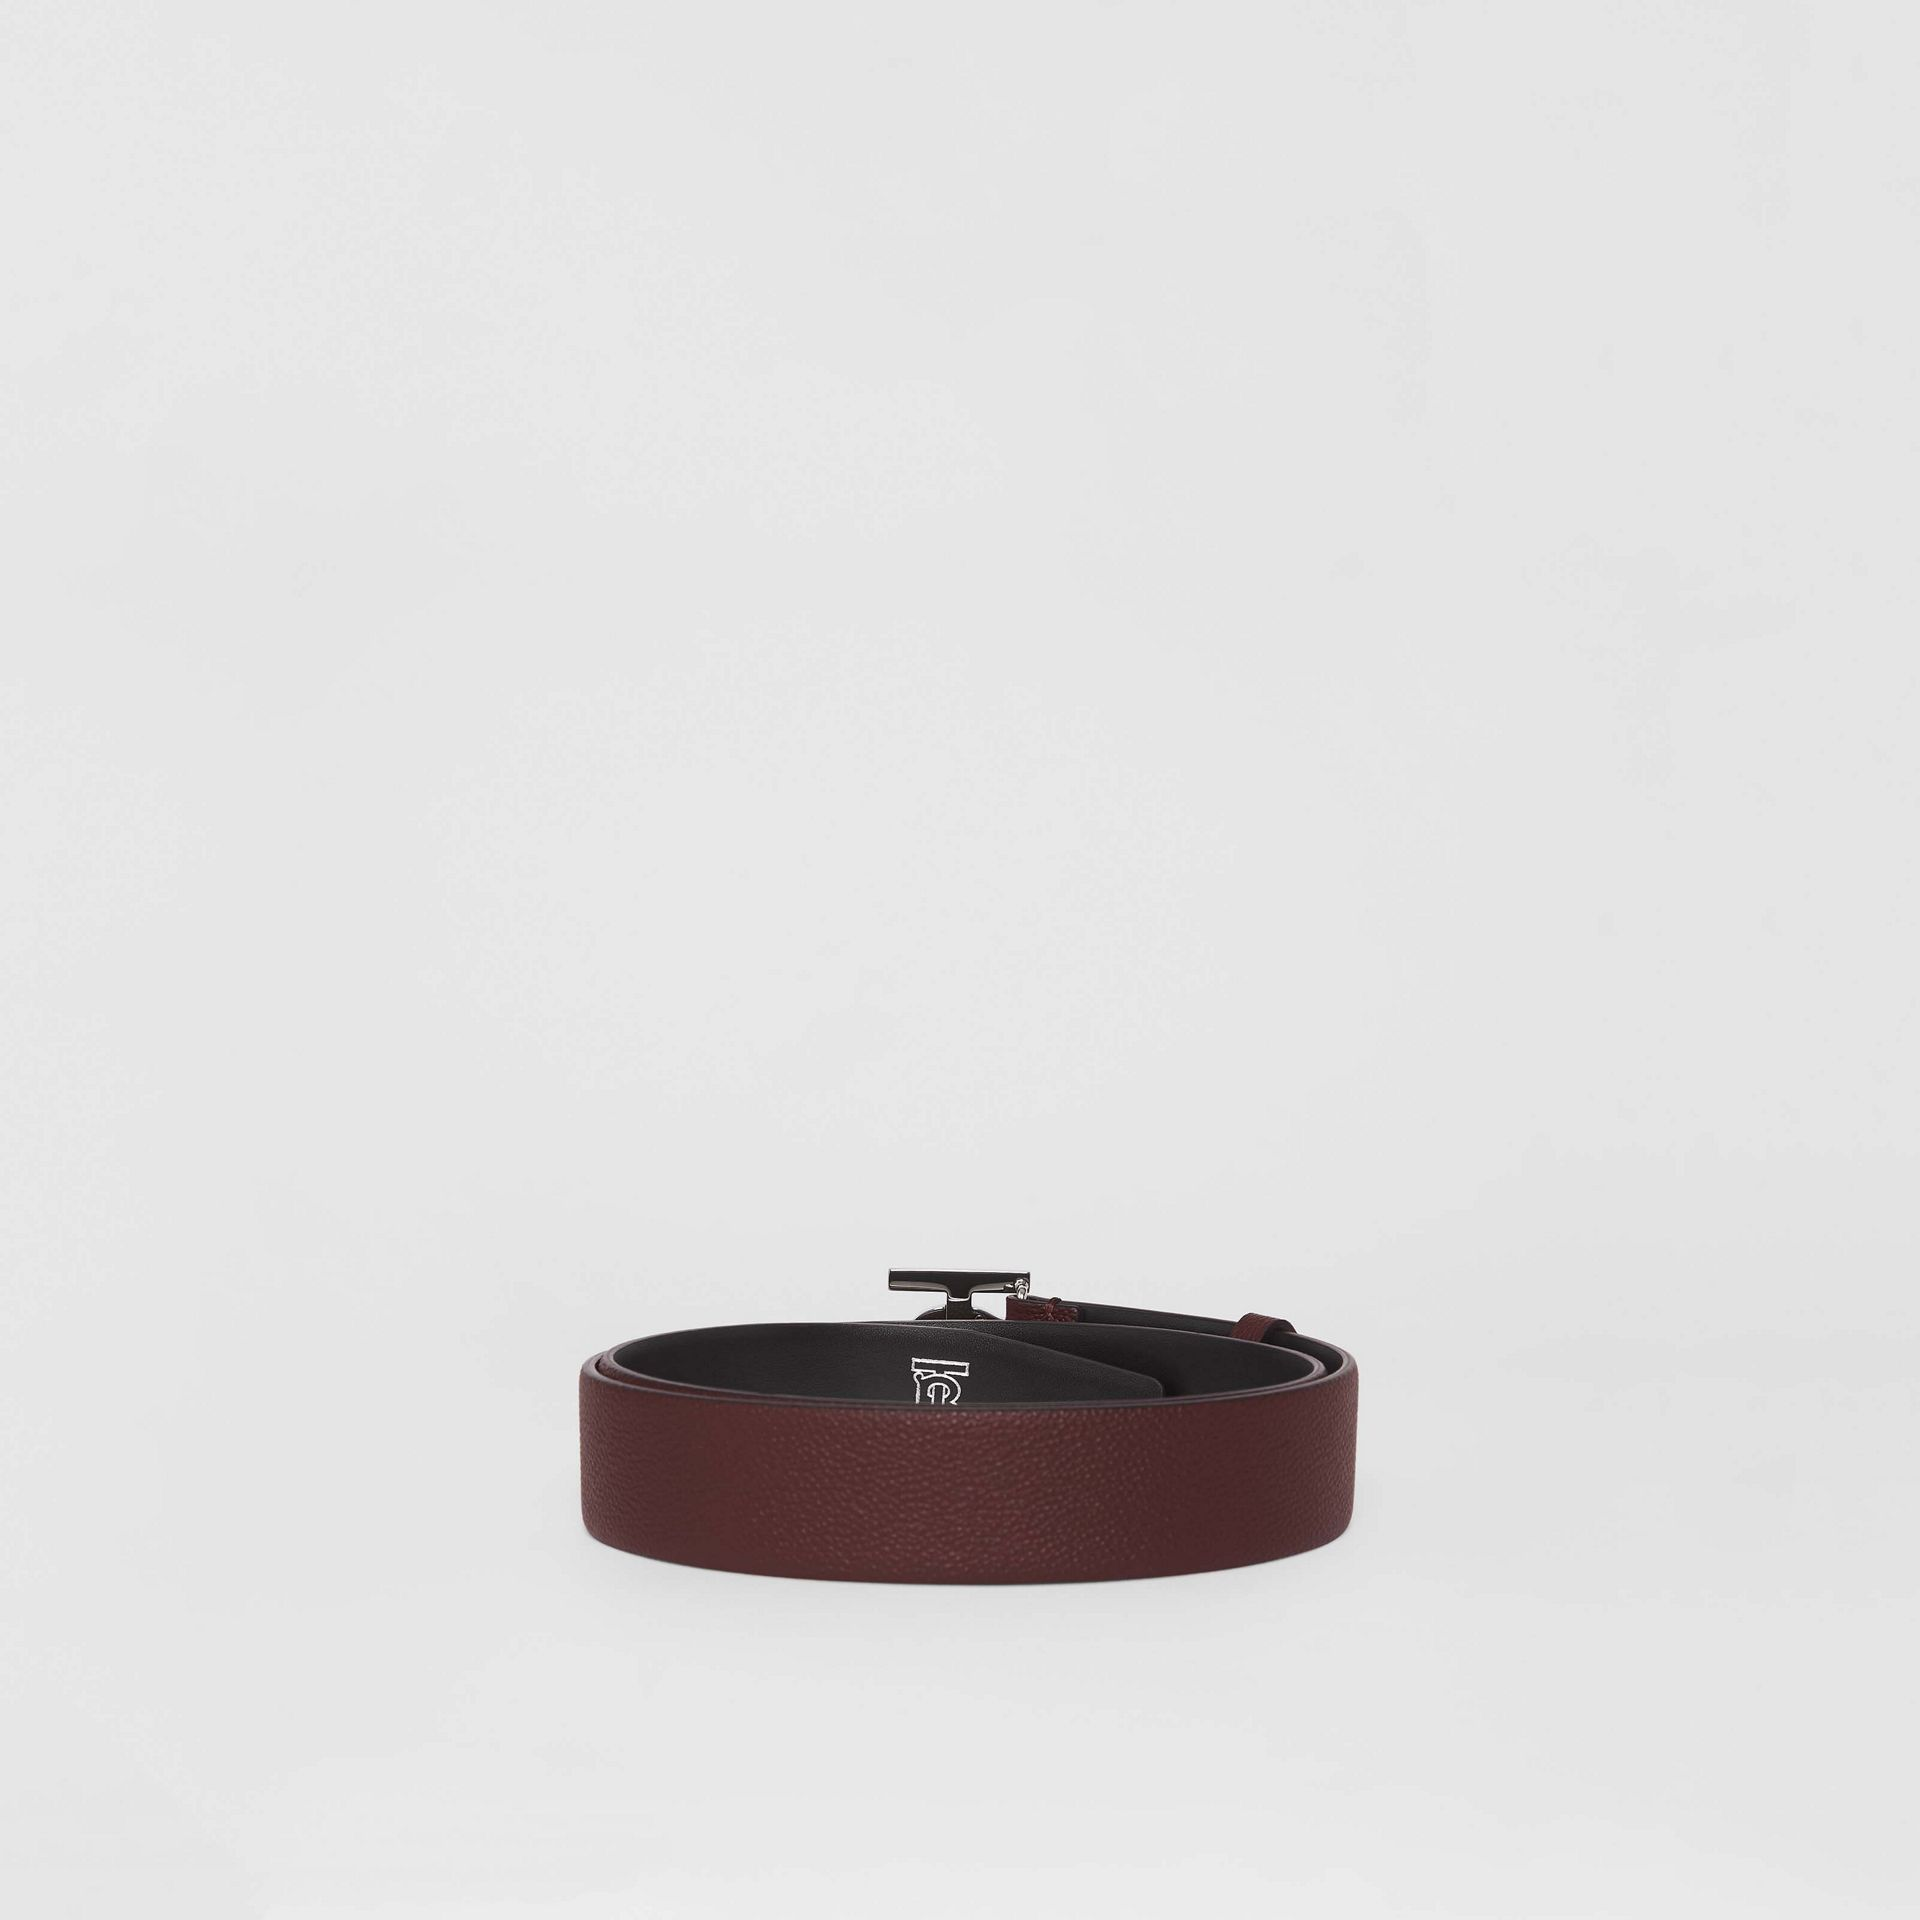 Monogram Motif Leather Belt in Oxblood - Men | Burberry Hong Kong S.A.R - gallery image 4